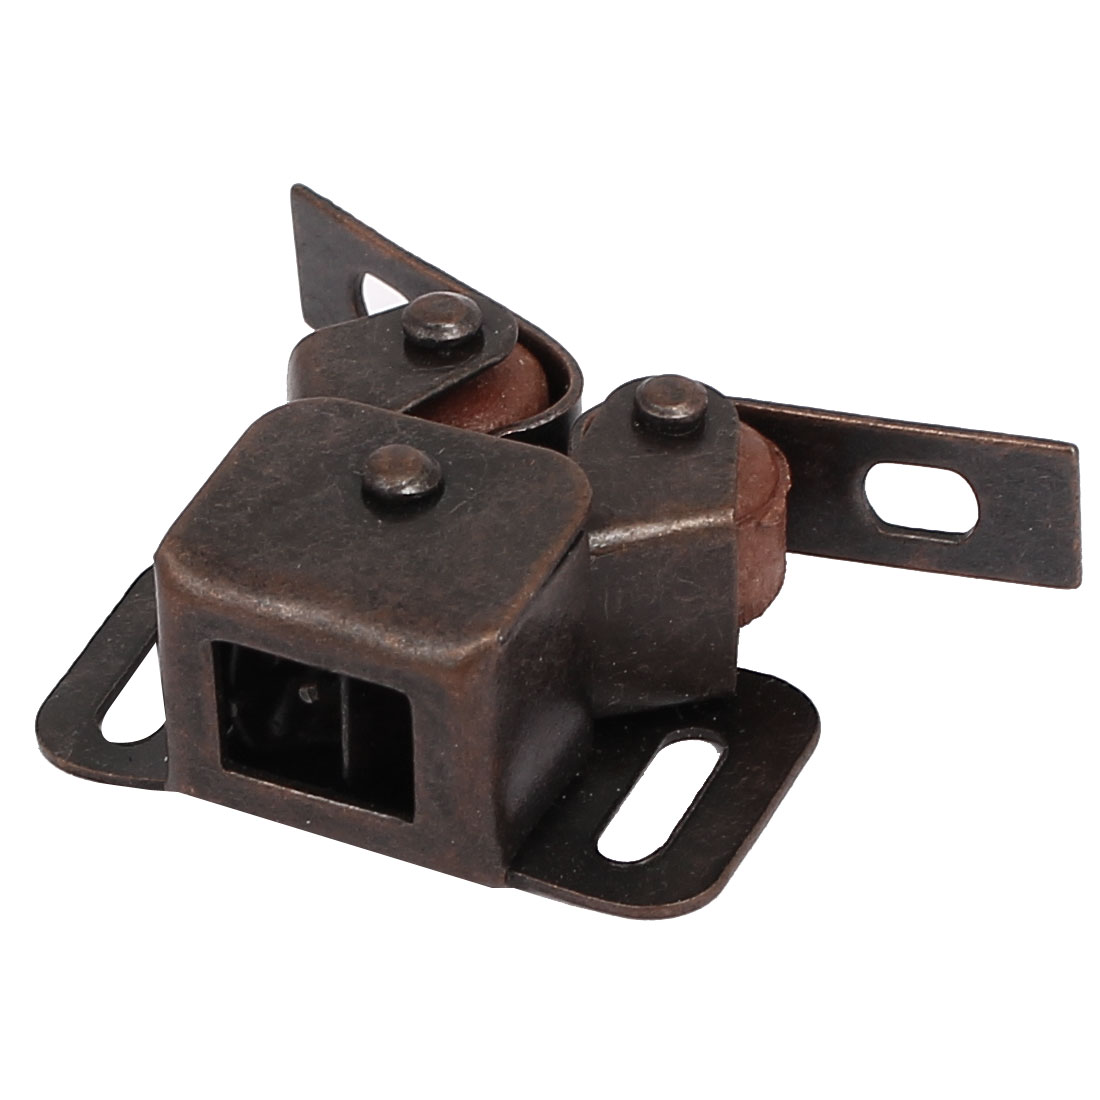 Cabinet Wardrobe Door Double Ball Roller Latch Catch Copper Tone 41x31x15mm